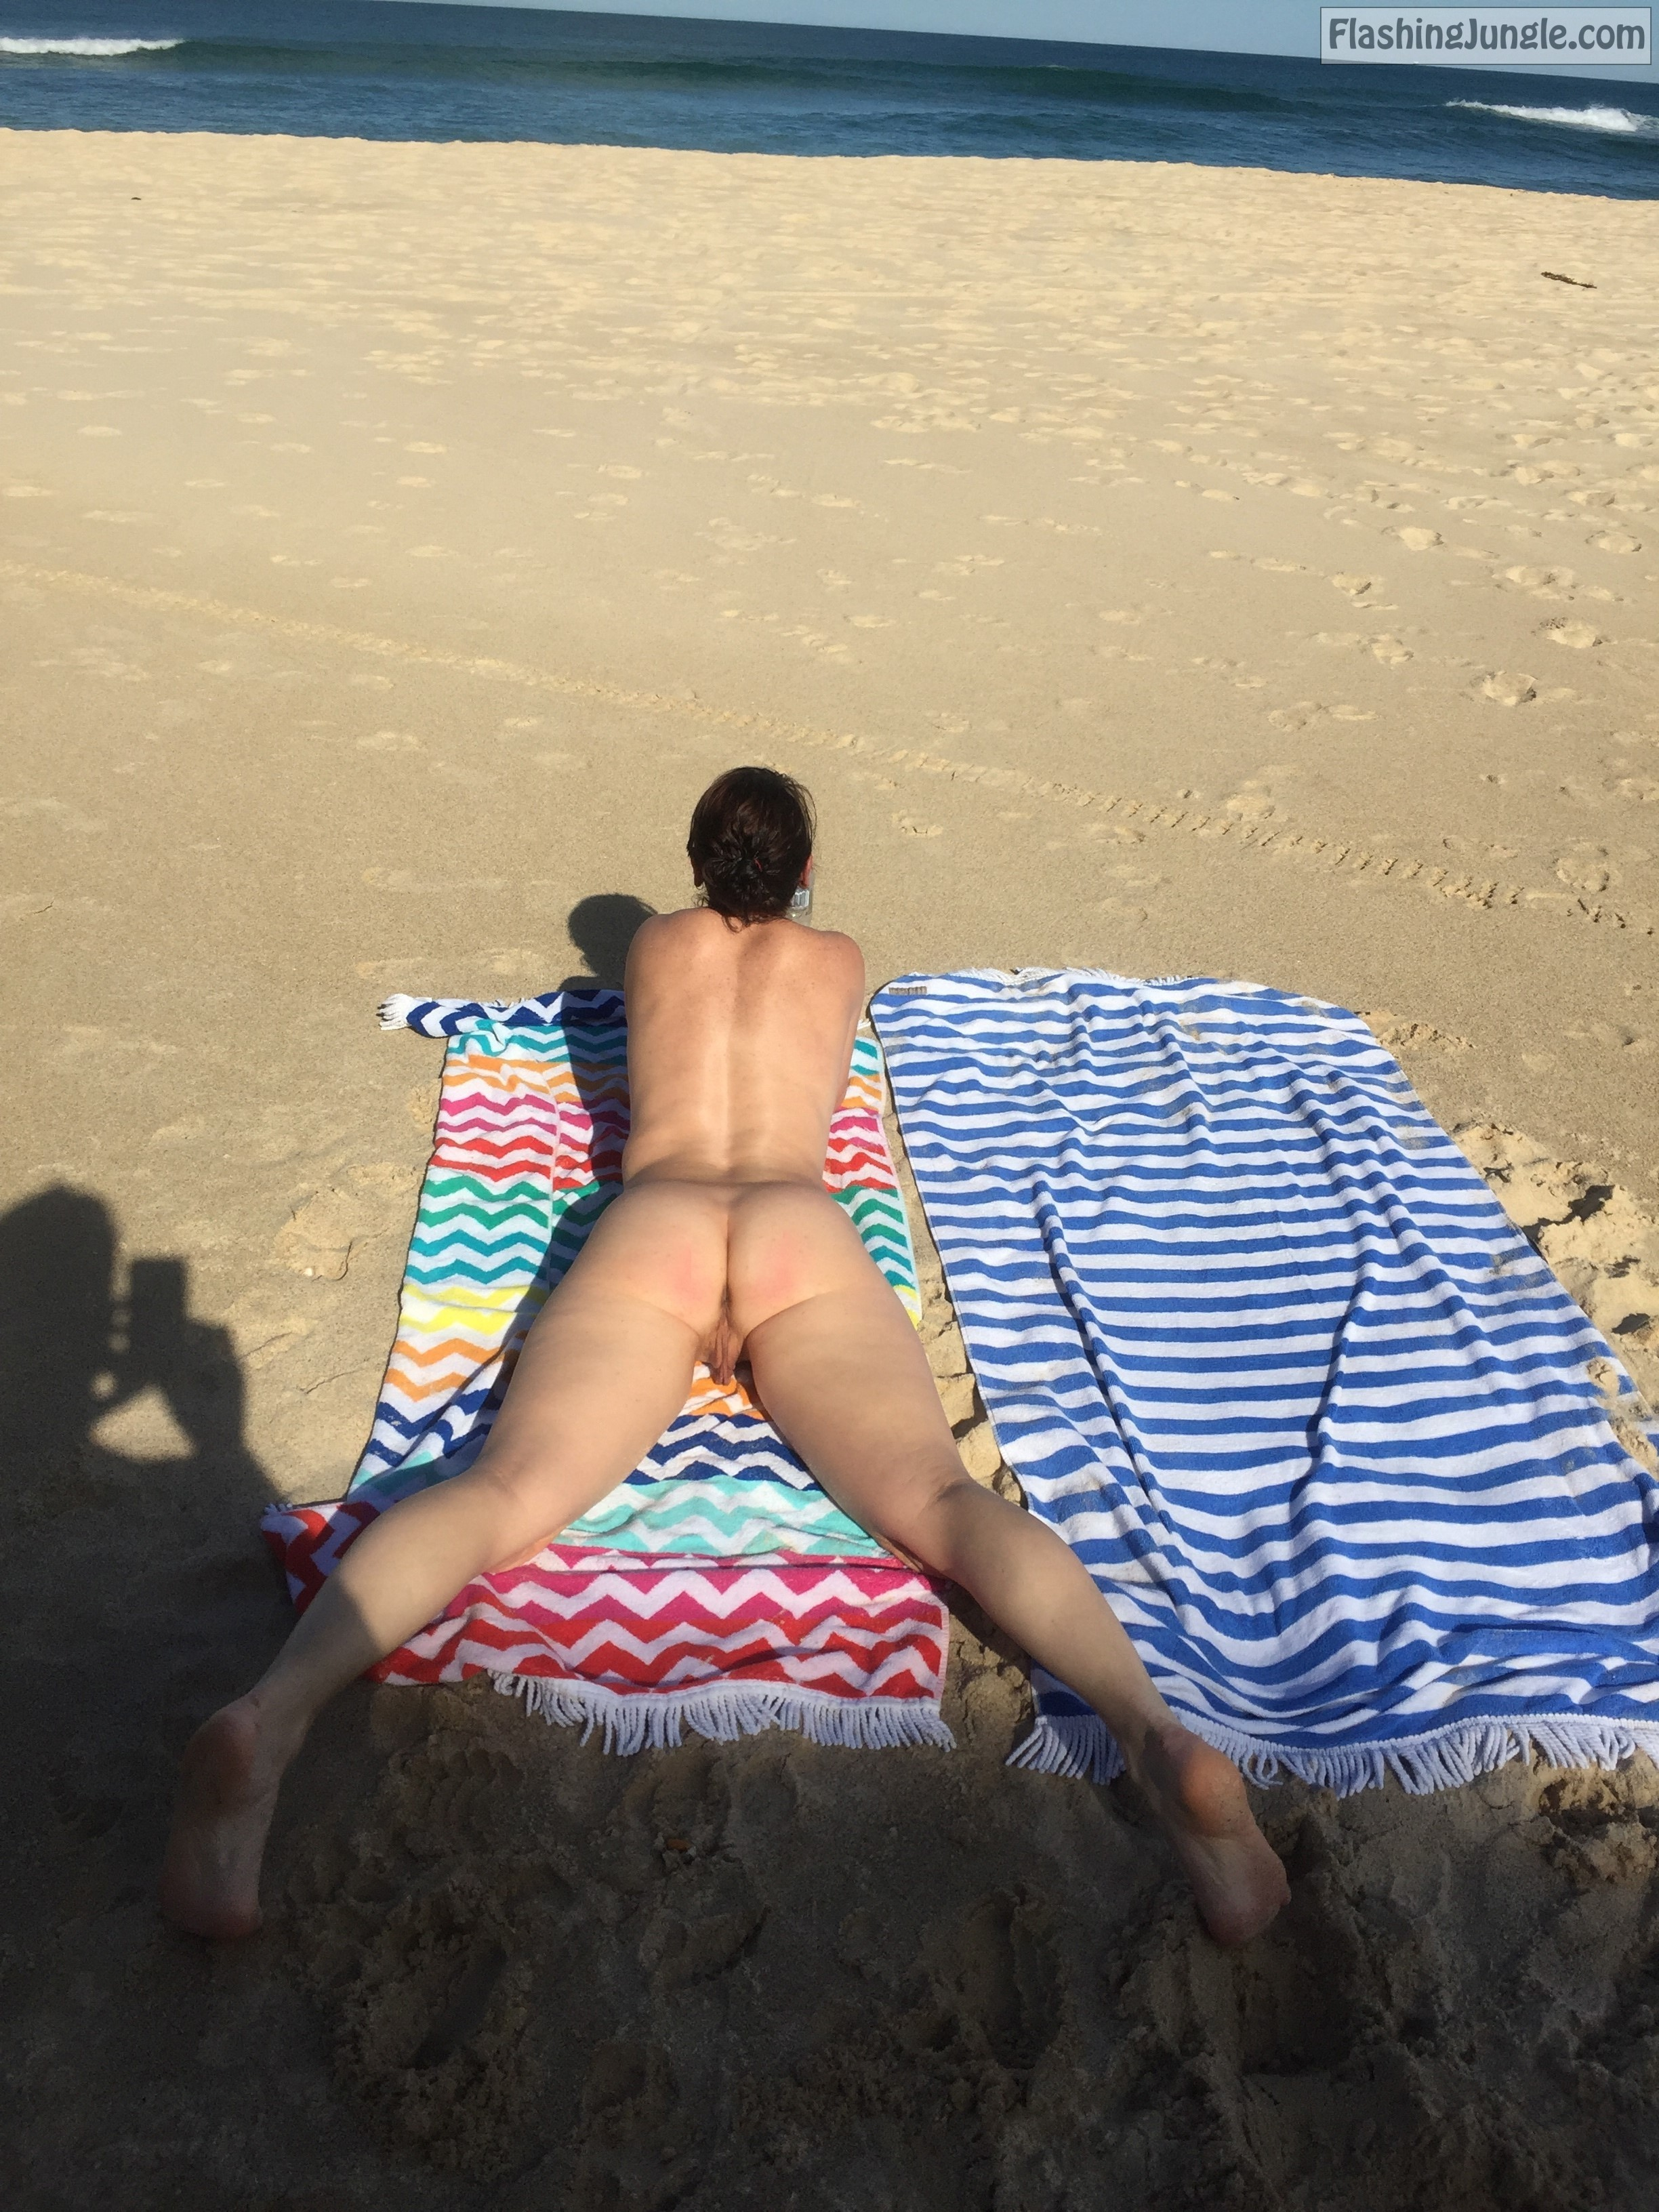 Sharing nude wife on public beach